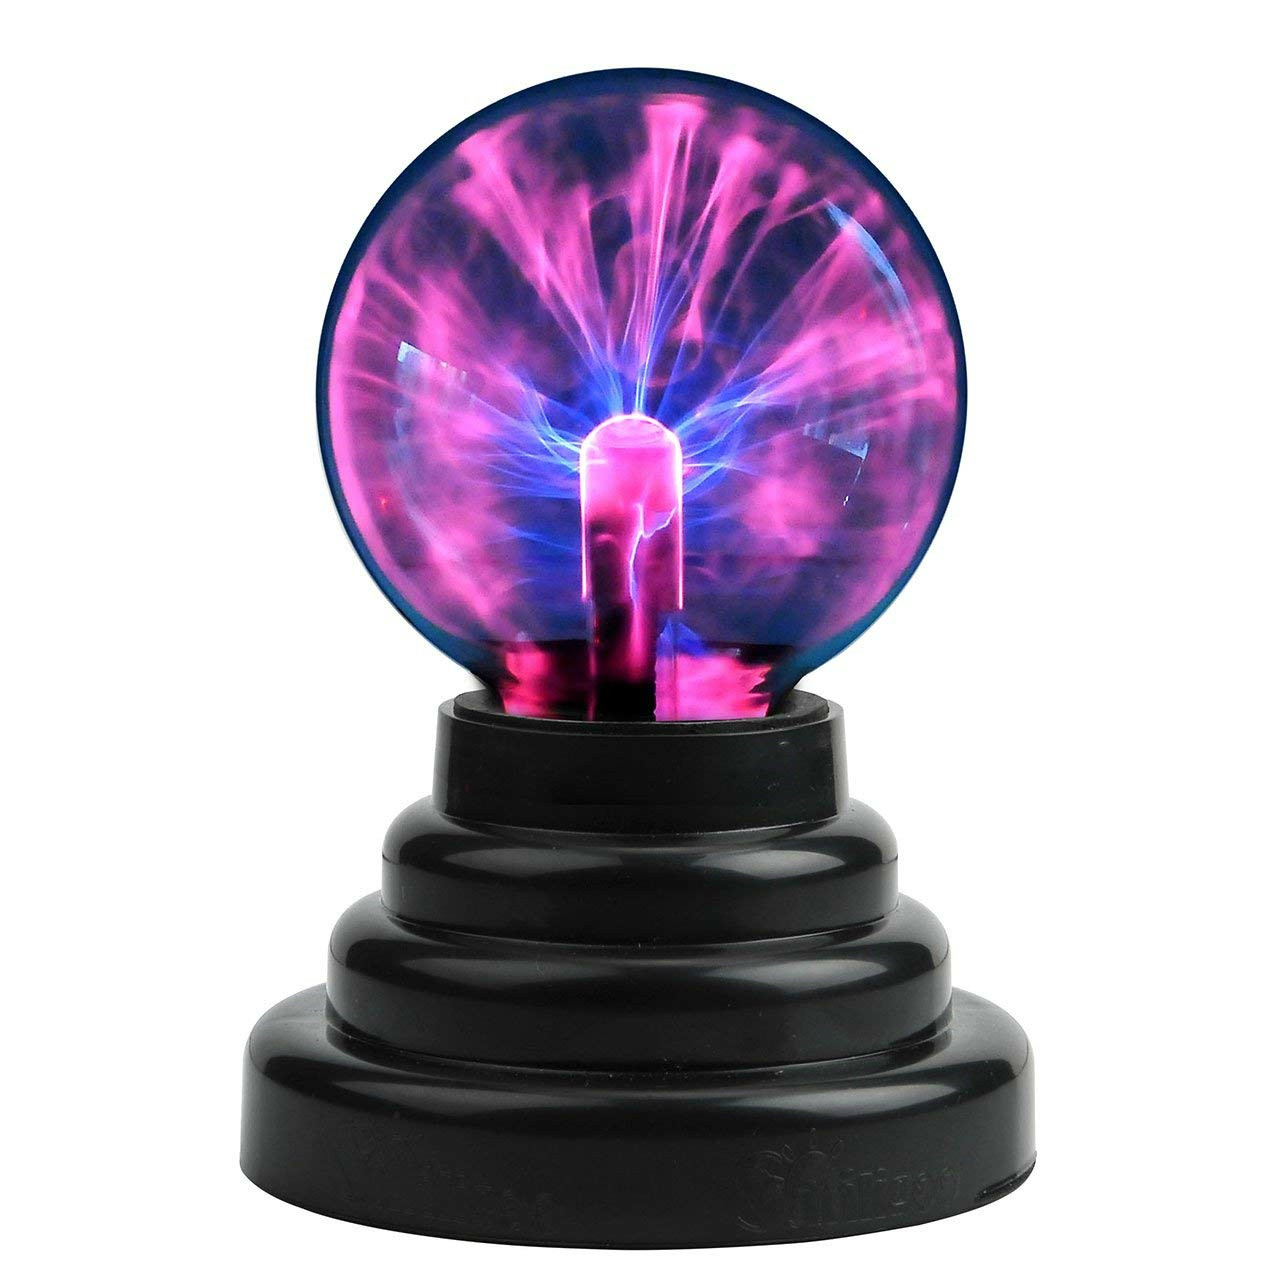 New Magic Plasma Ball Novelty Light Usb Electrostatic Sphere Light Bulb Touch Night Light Toys For Kids Adult Gift